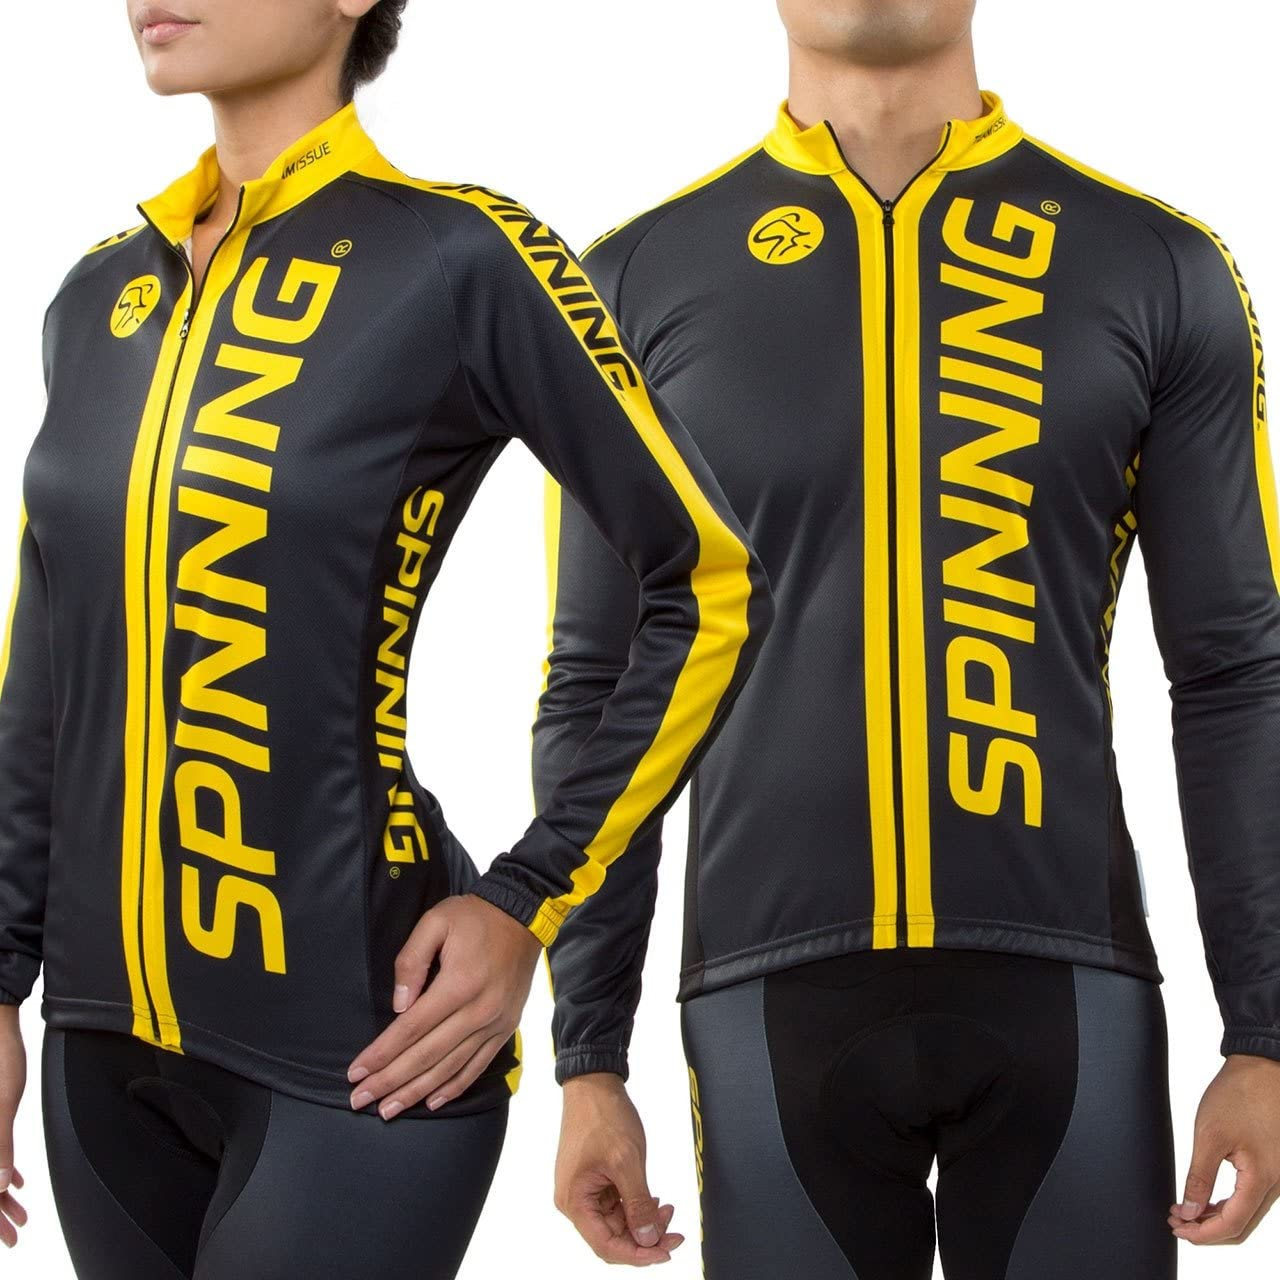 SPINNING 40-072-06XXXL Chaleco, Hombre, Amarillo, FR : 3XL (Taille ...